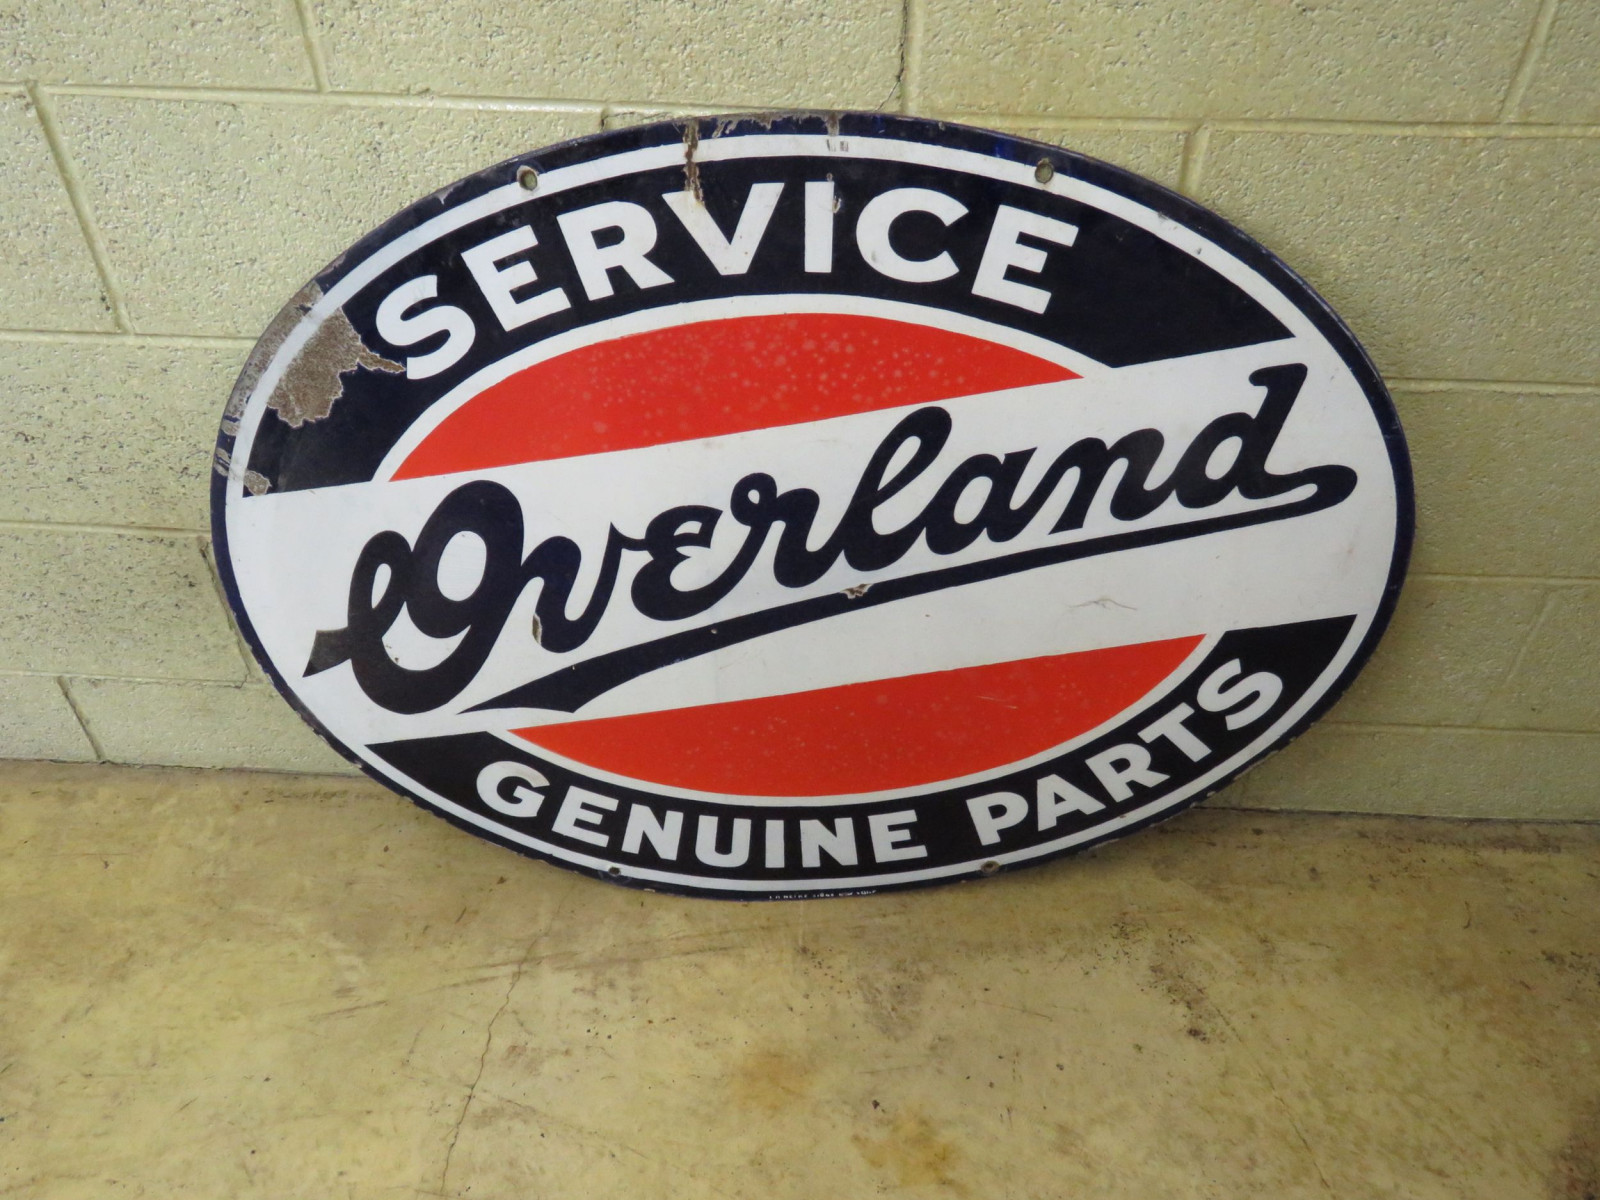 Overland Service & Genuine Parts Porcelain Sign - Image 3